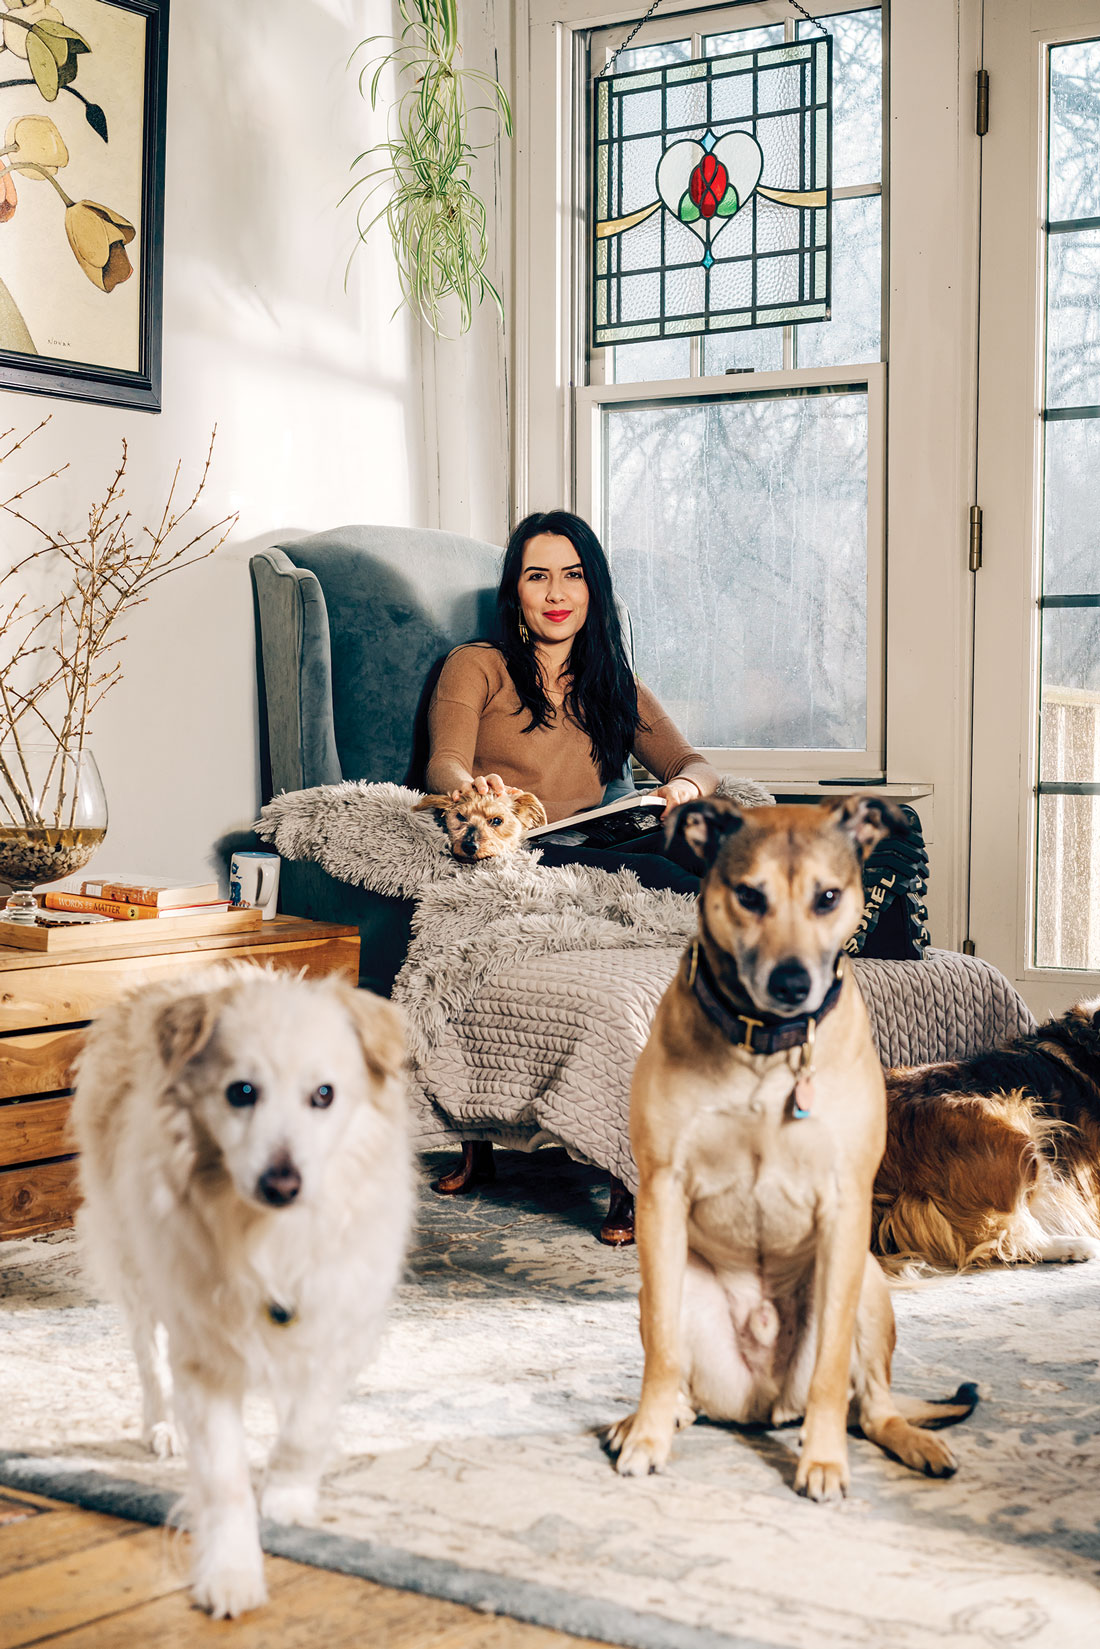 Rosanna Gargiulo and her dogs in her Dresden Maine home